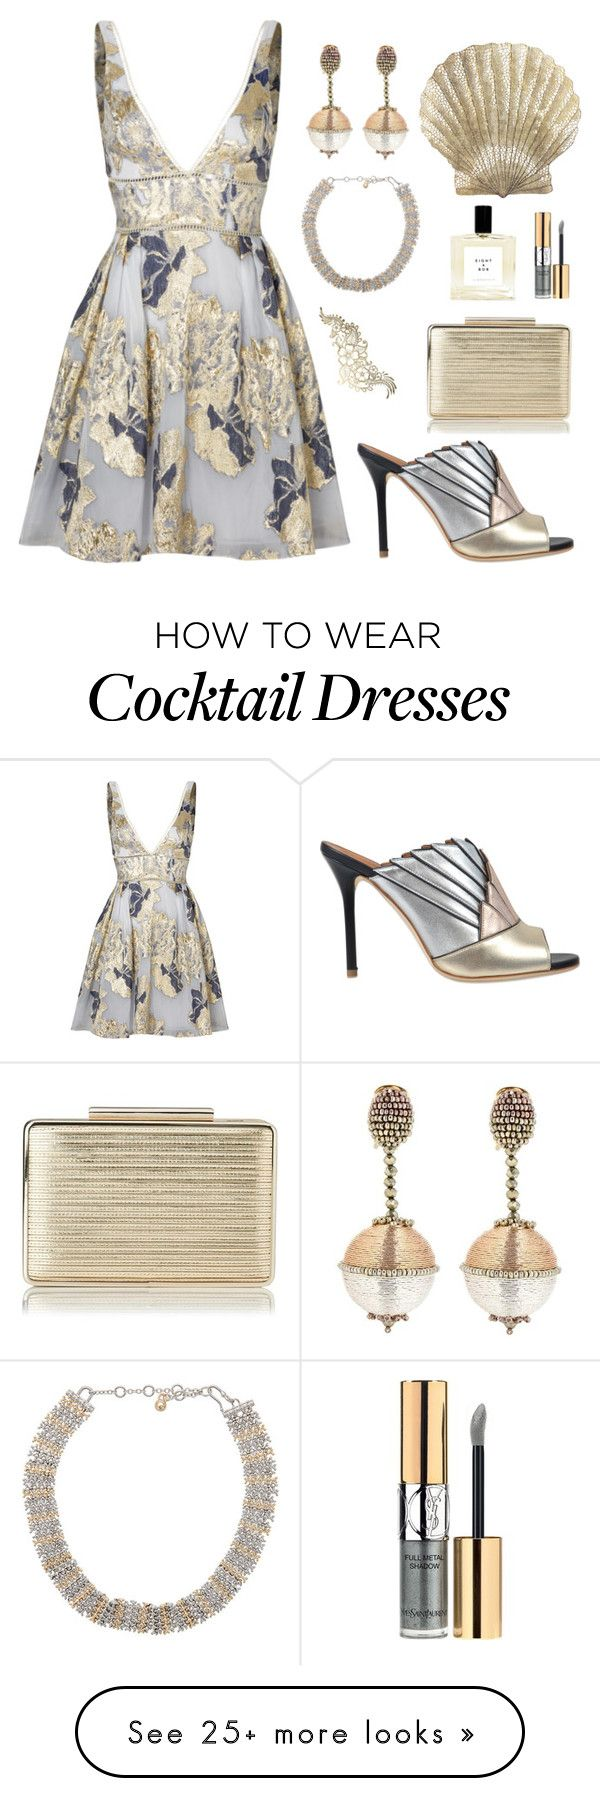 """metallic princess"" by youvegotraye on Polyvore featuring Notte by Marchesa, Benson Mills, Yves Saint Laurent, Malone Souliers, Oscar de la Renta, Eddie Borgo and L.K.Bennett"